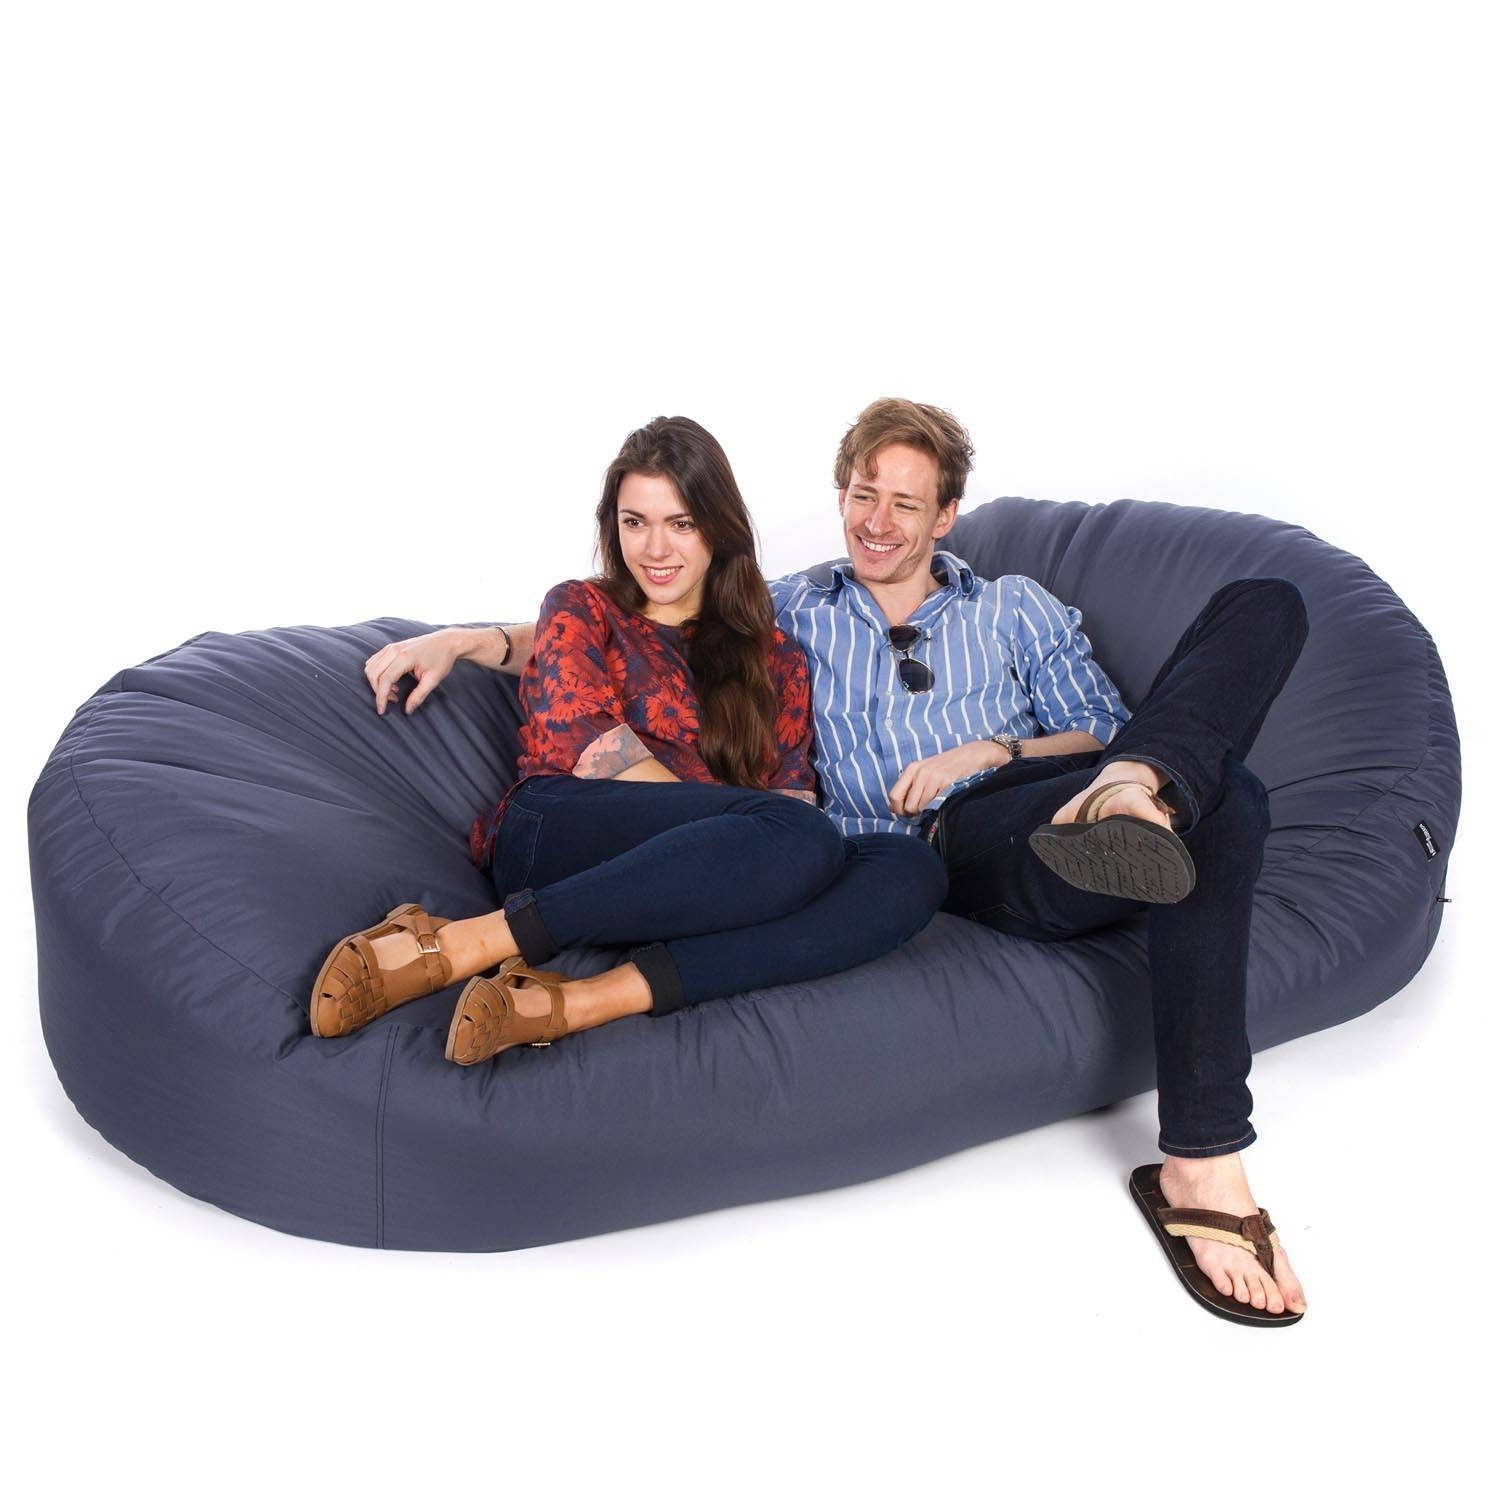 Indoor/outdoor Sofa Bed Bean Bag regarding Bean Bag Sofas and Chairs (Image 15 of 15)